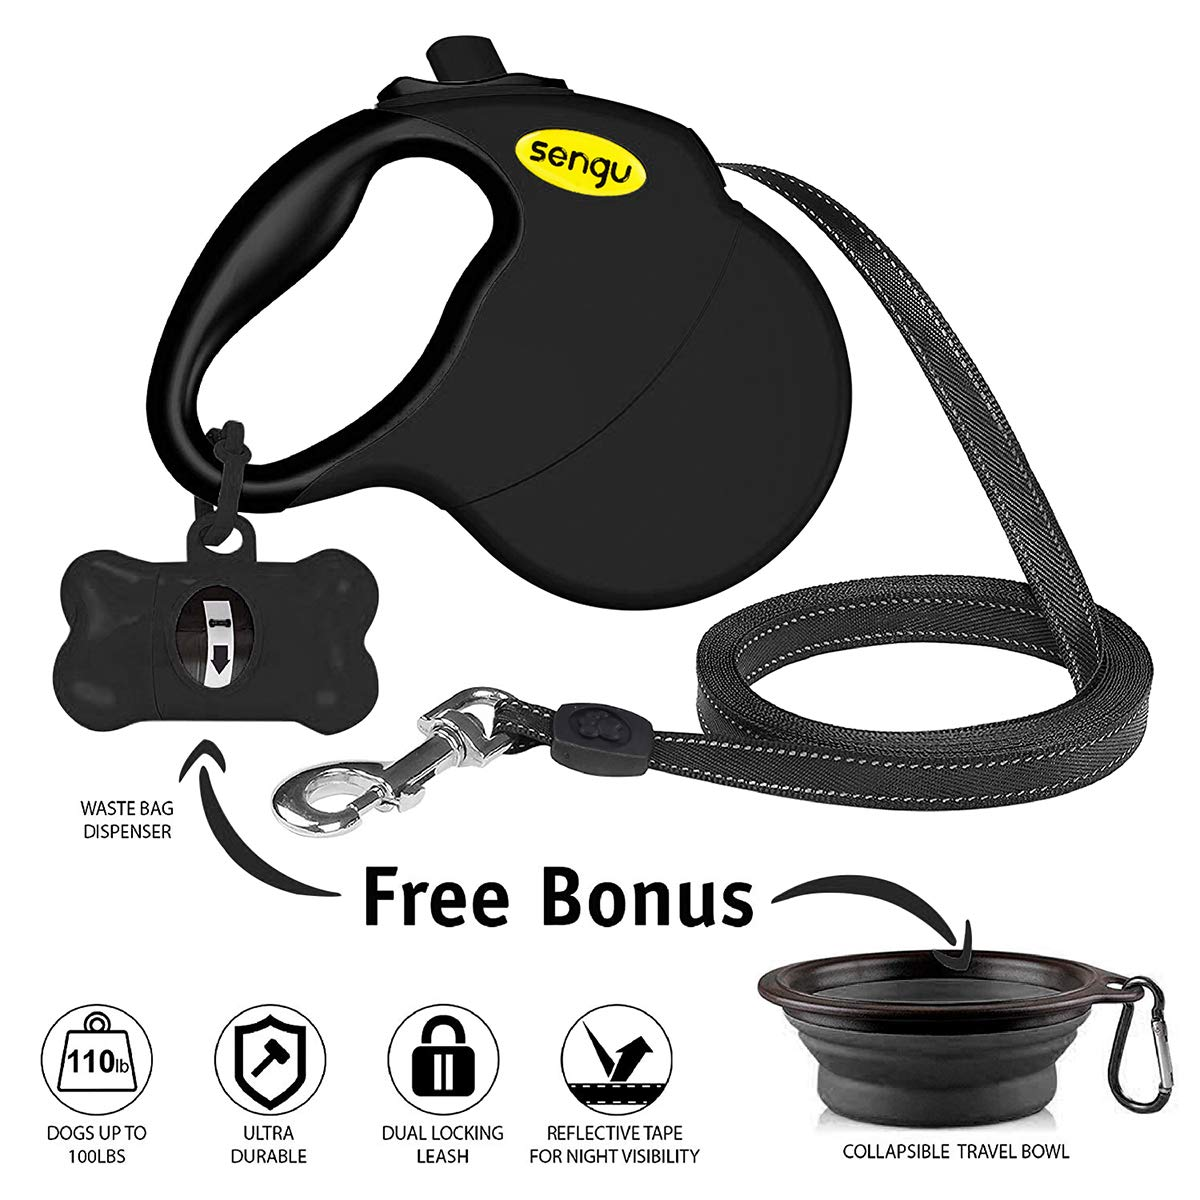 Retractable Dog Leash, 16 ft Nylon Dog Walking Leashes for Small Medium Large Dogs up to 110lbs, One Button Break & Lock, Tangle Free, Black with Bowl & Waste Bag